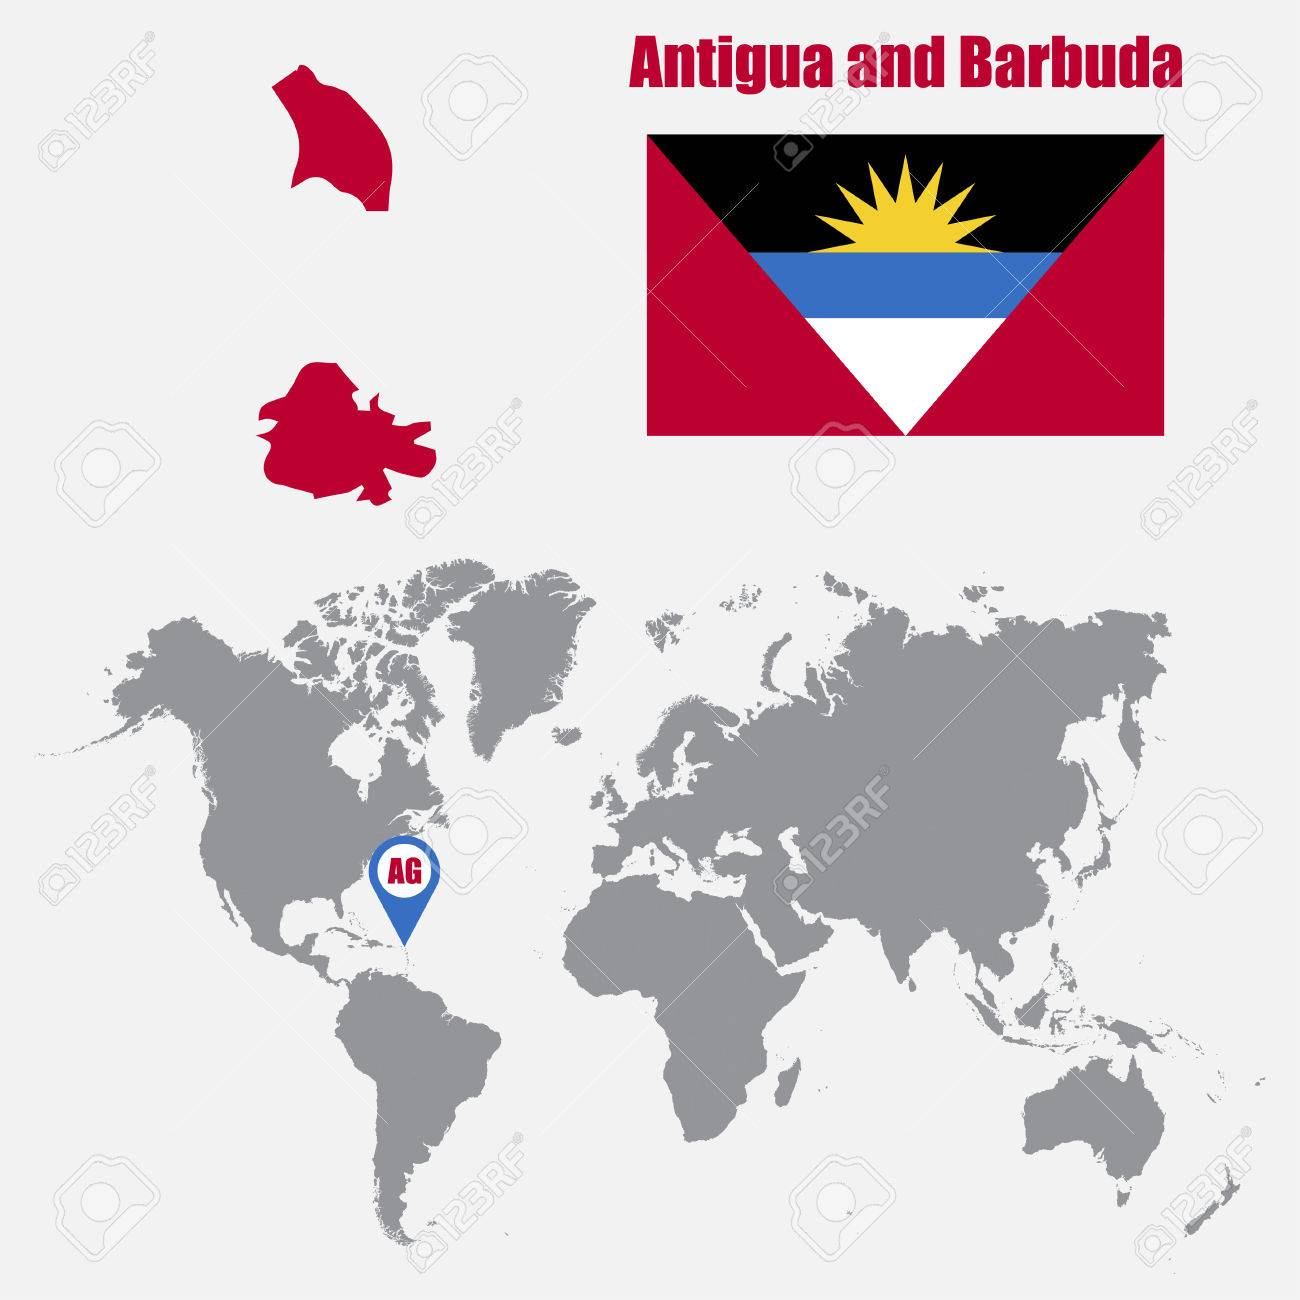 Antigua And Barbuda World Map.Antigua And Barbuda Map On A World Map With Flag And Map Pointer